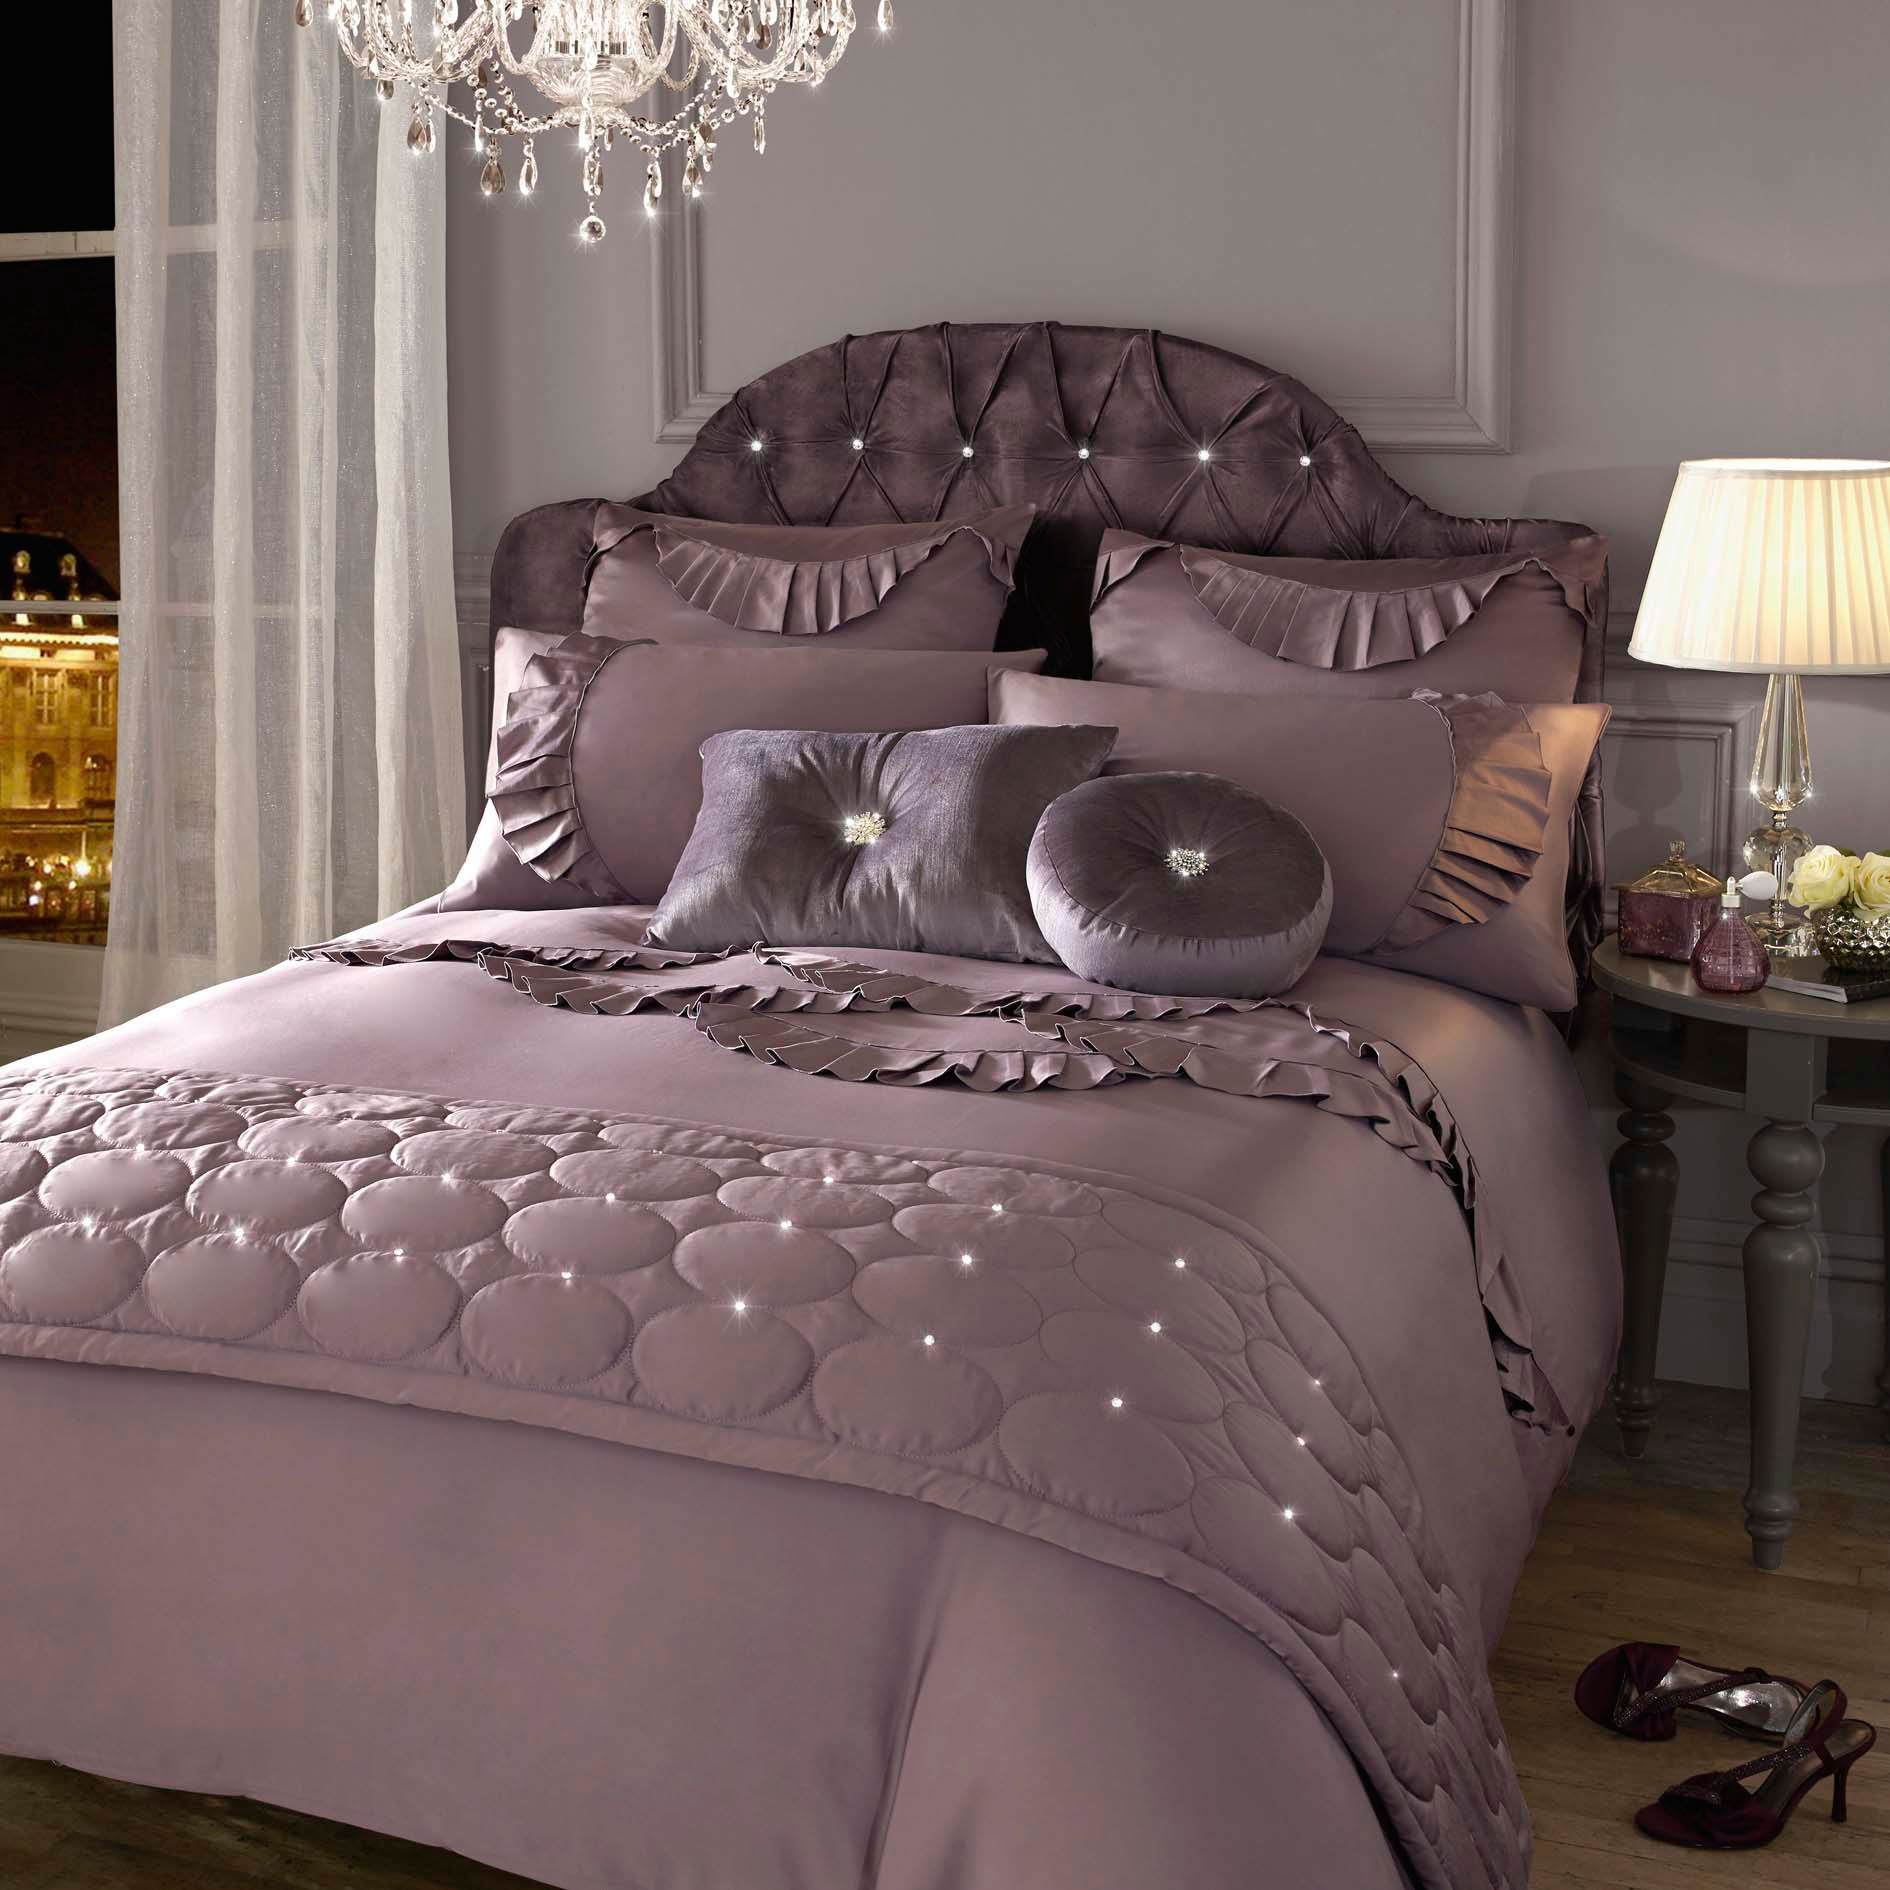 Evangeline amethyst square pillowcase